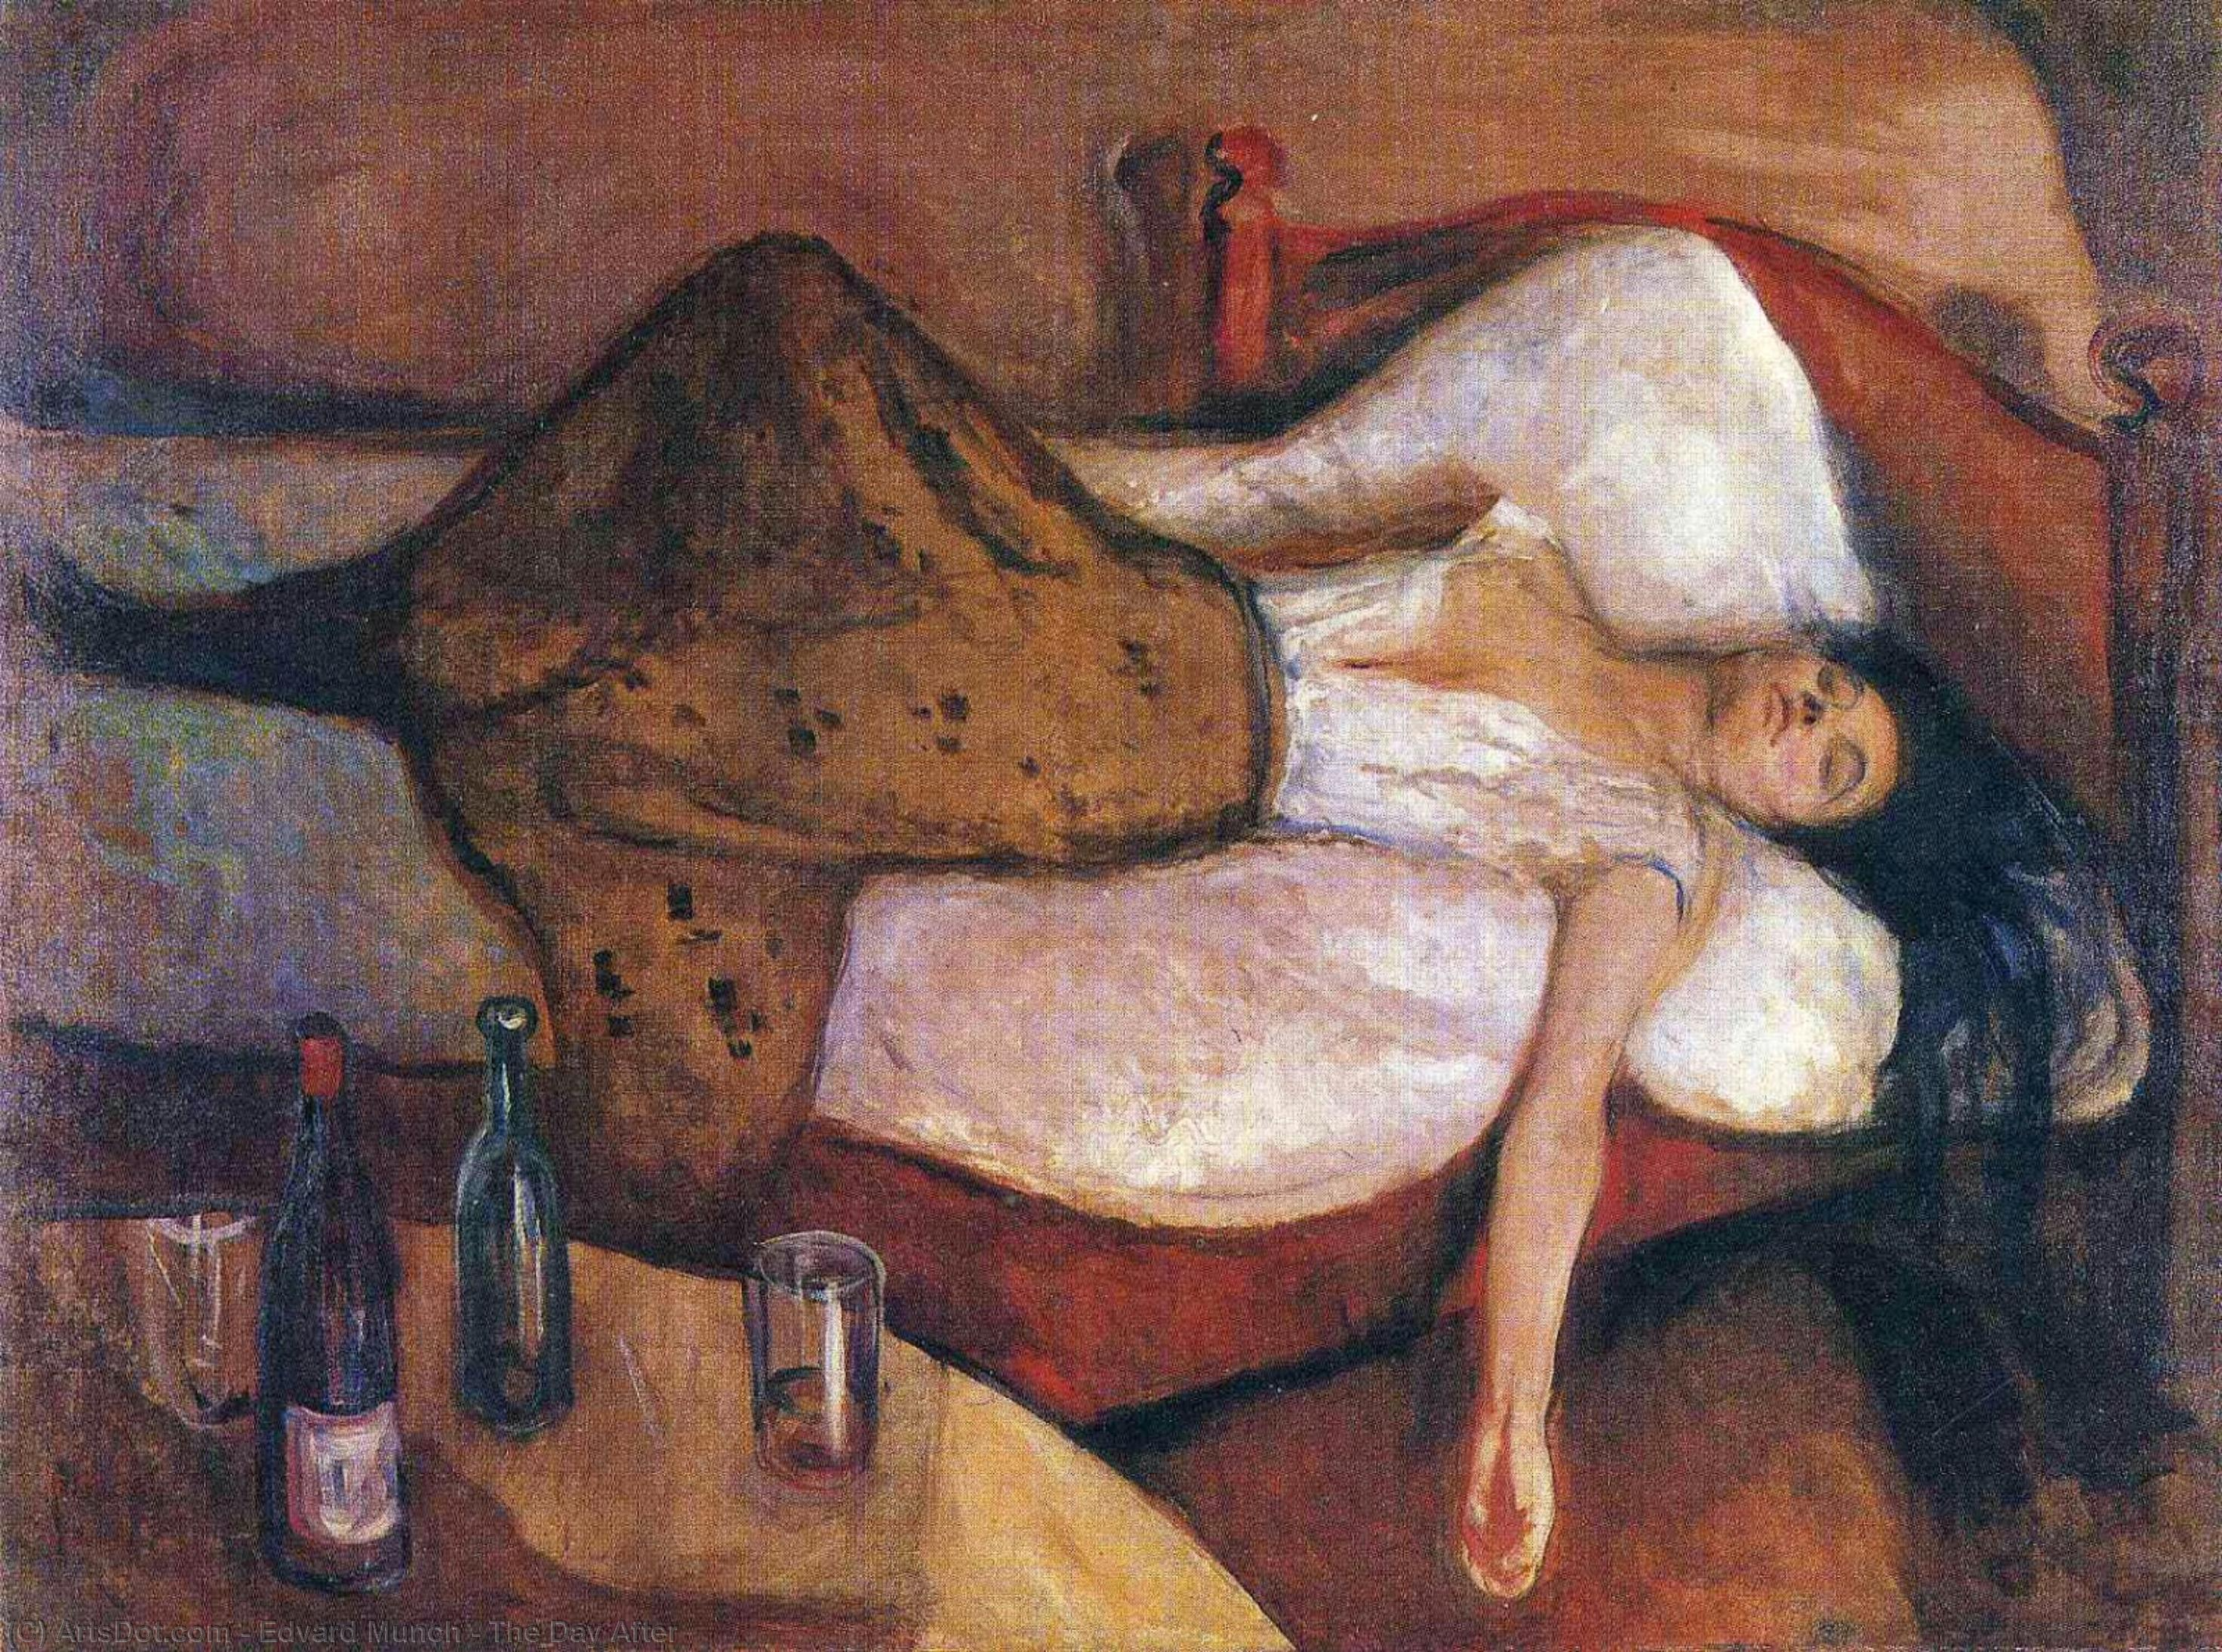 The Day After, 1895 by Edvard Munch (1863-1944, Sweden) | Reproductions Edvard Munch | ArtsDot.com